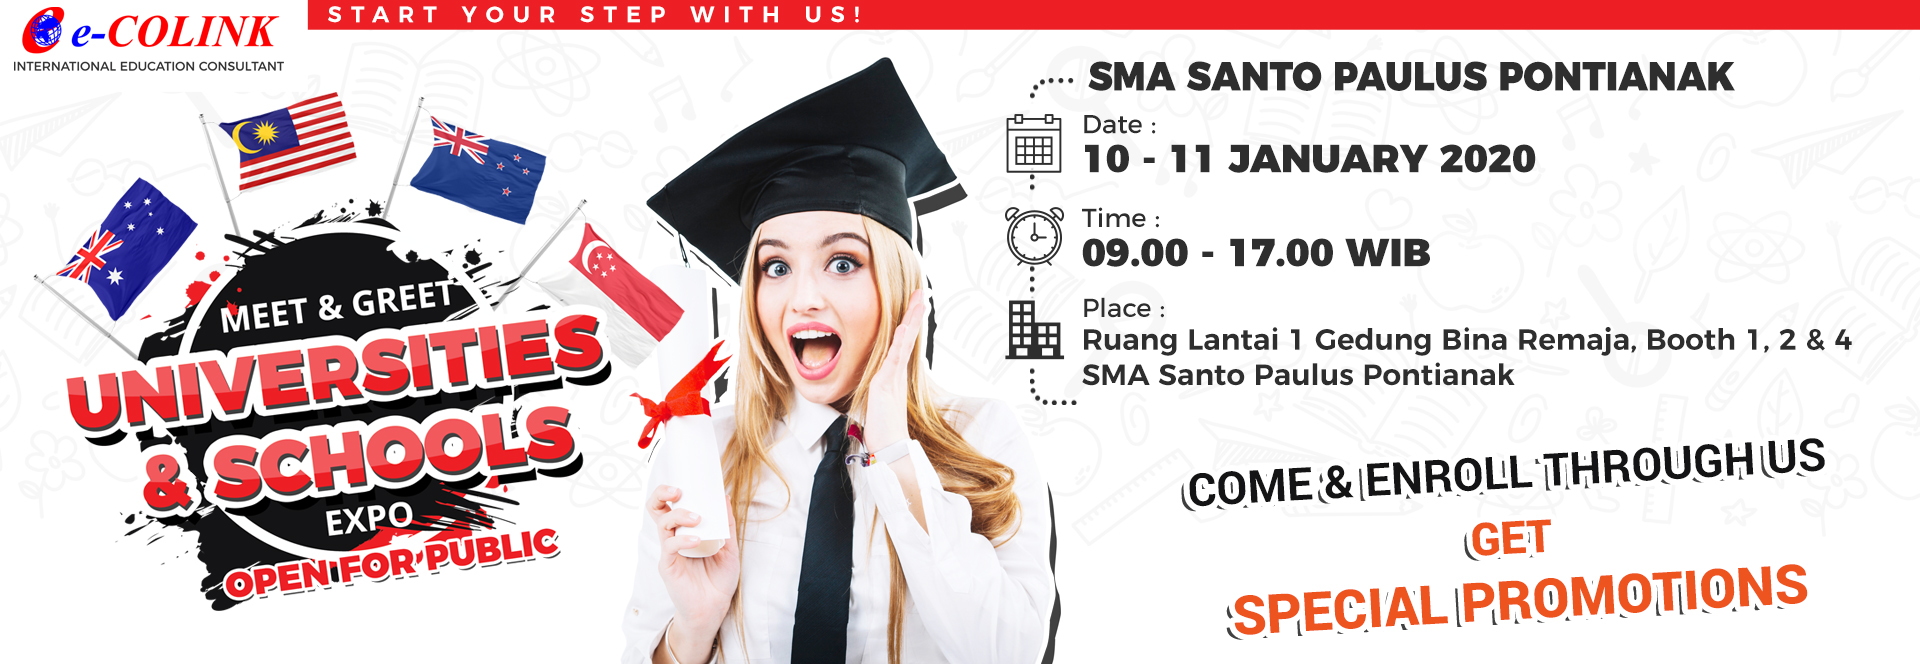 INTERNATIONAL EDUCATION EXPO 2020 - PONTIANAK - SMA SANTO PAULUS PONTIANAK